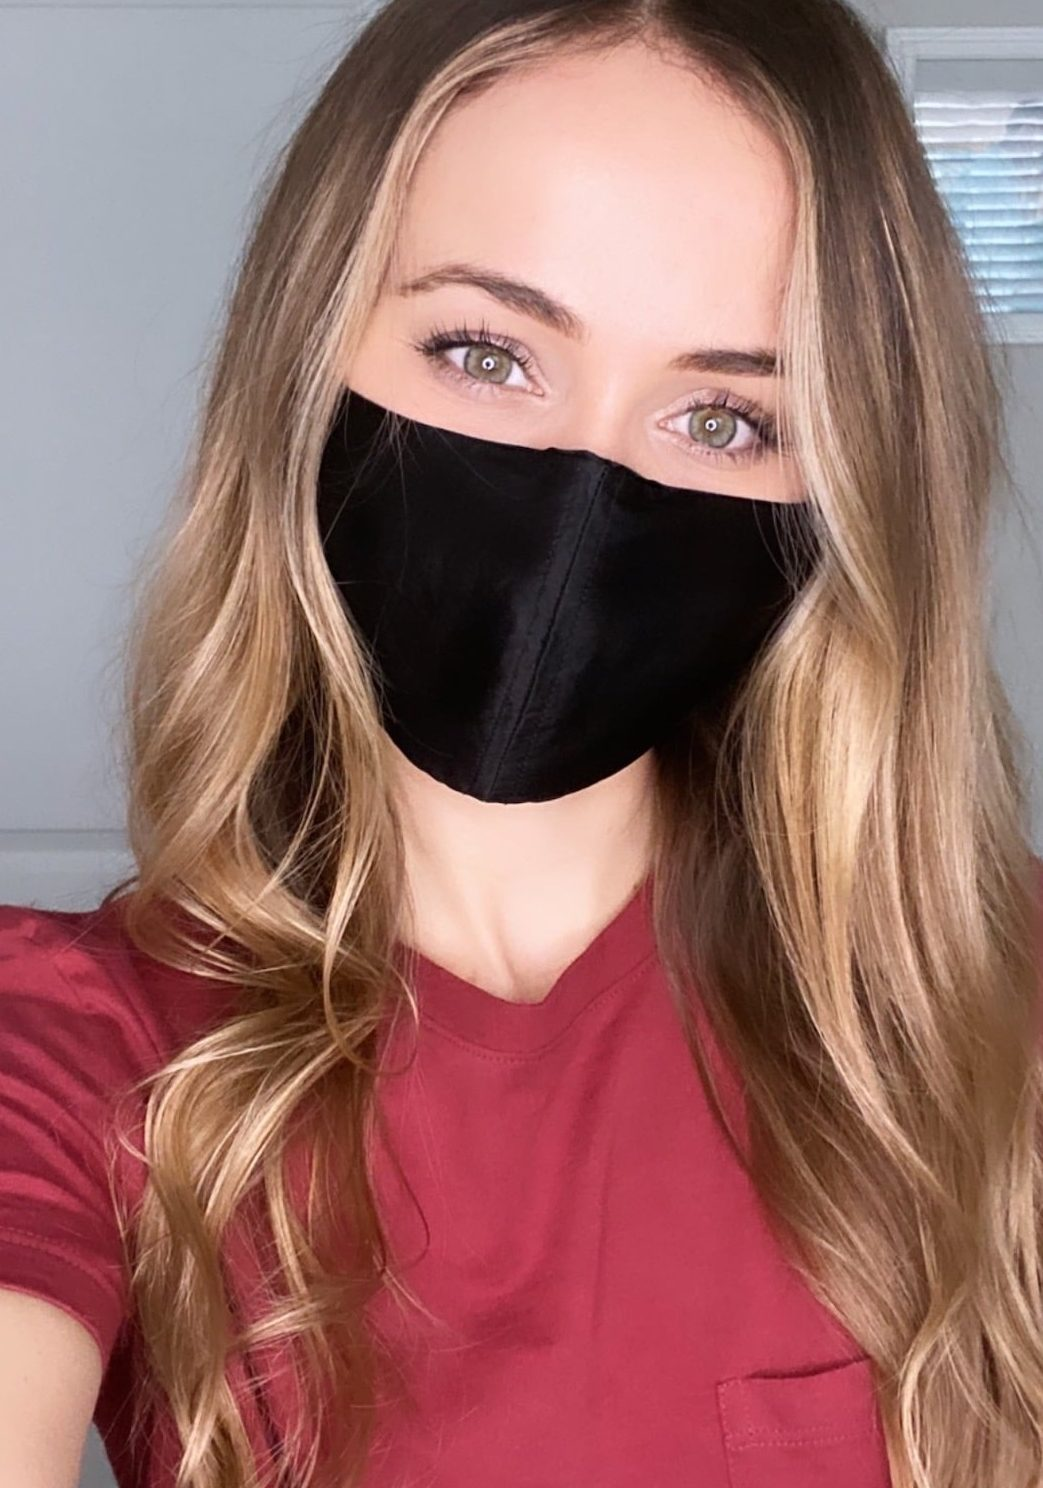 Lauryn with black mask and red shirt